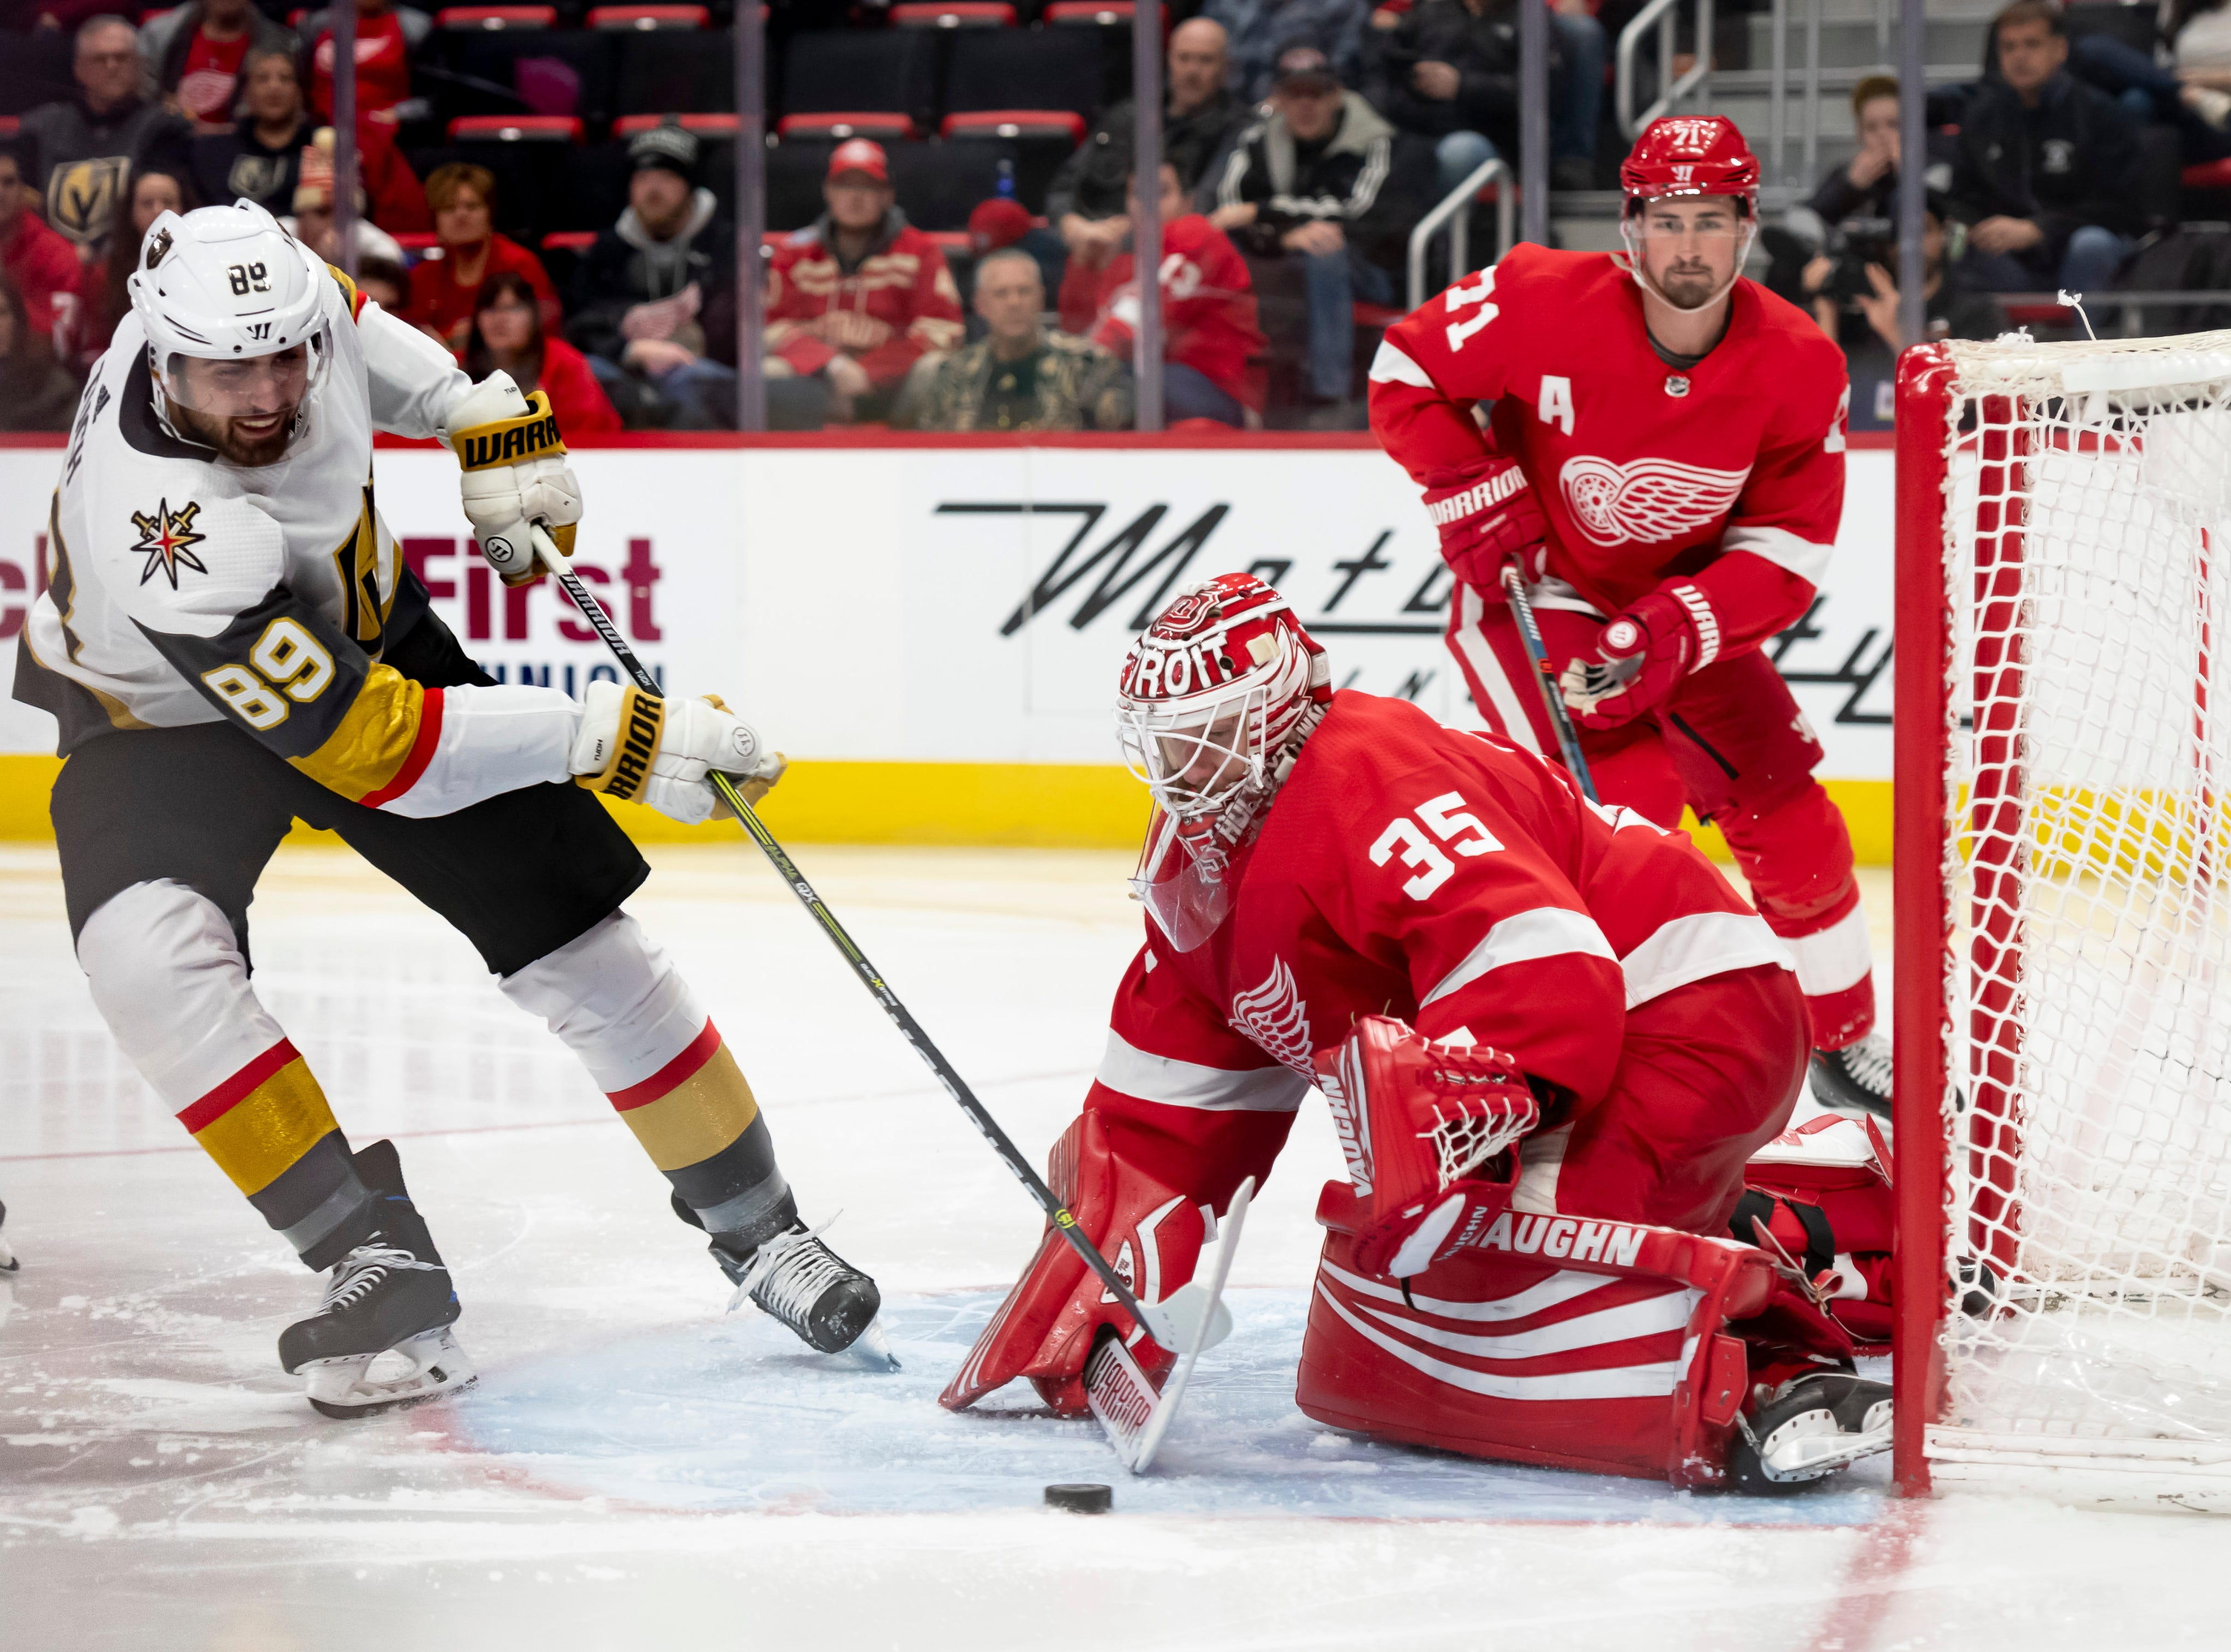 Vegas right wing Alex Tuch tries to get the puck past Detroit goaltender Jimmy Howard in the second period.